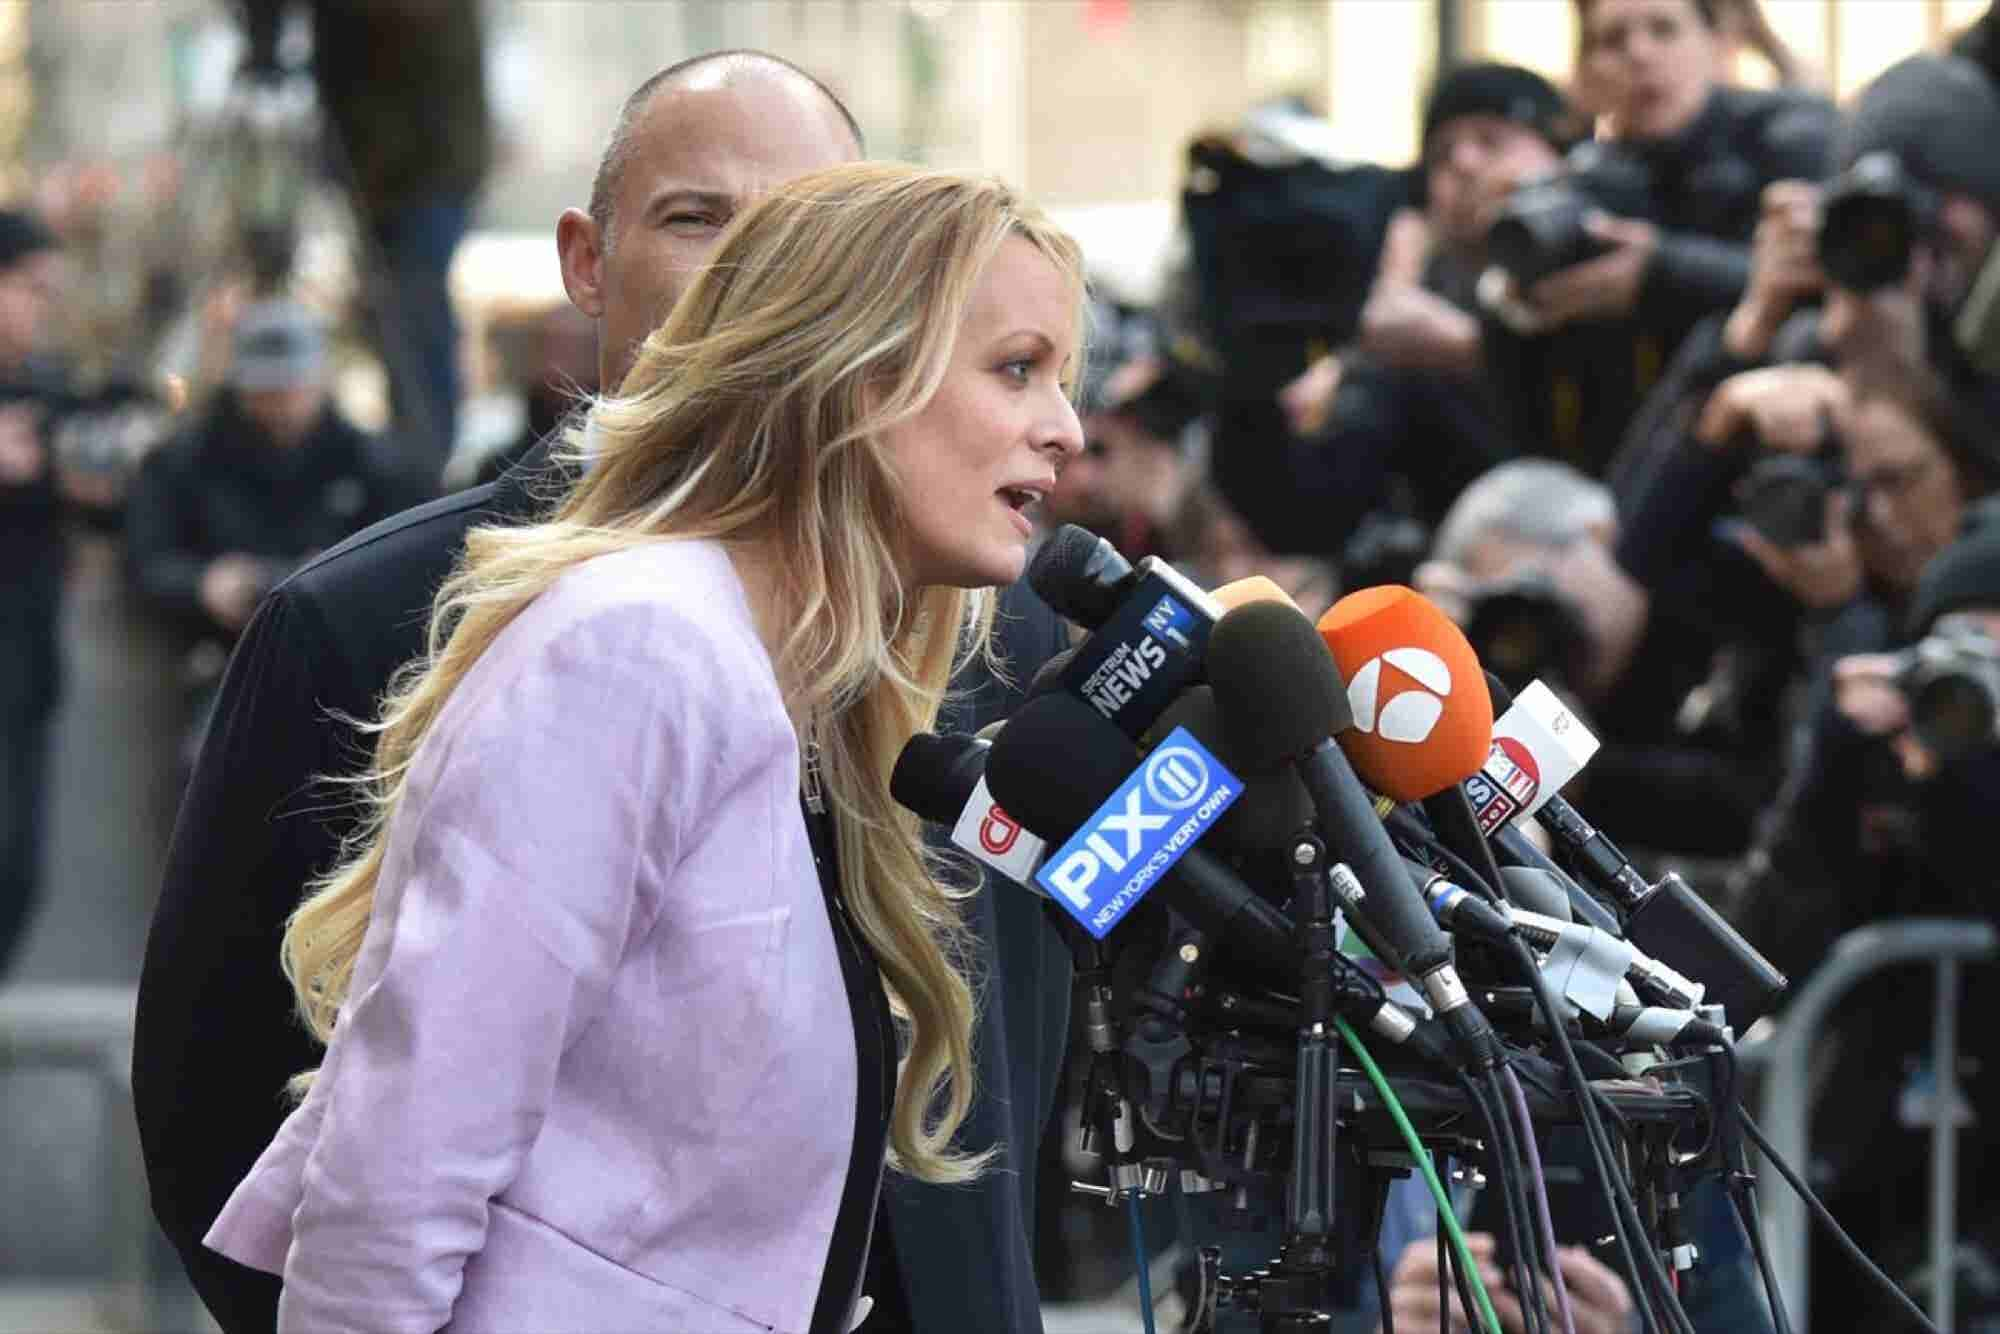 Marketing Lessons From Stormy Daniels